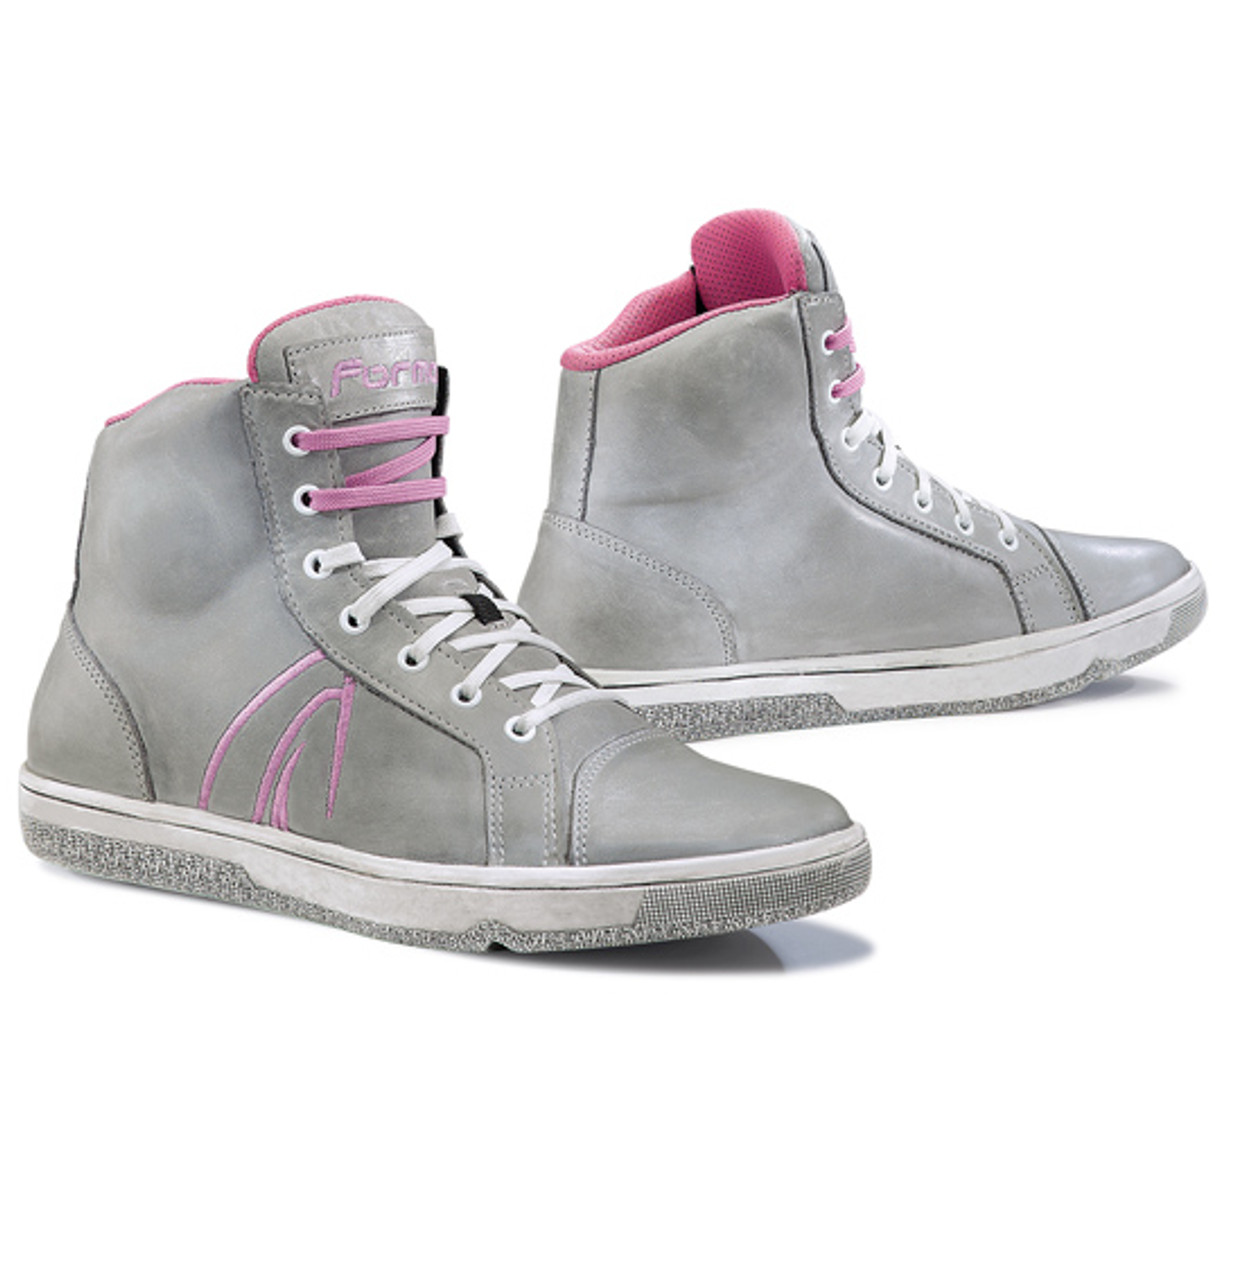 Forma Slam Dry Motorcycle Ladies Shoes Boots, Ladies, Grey Pink, Full Grain Leather Upper - CLEARANCE CLOSEOUT SALE